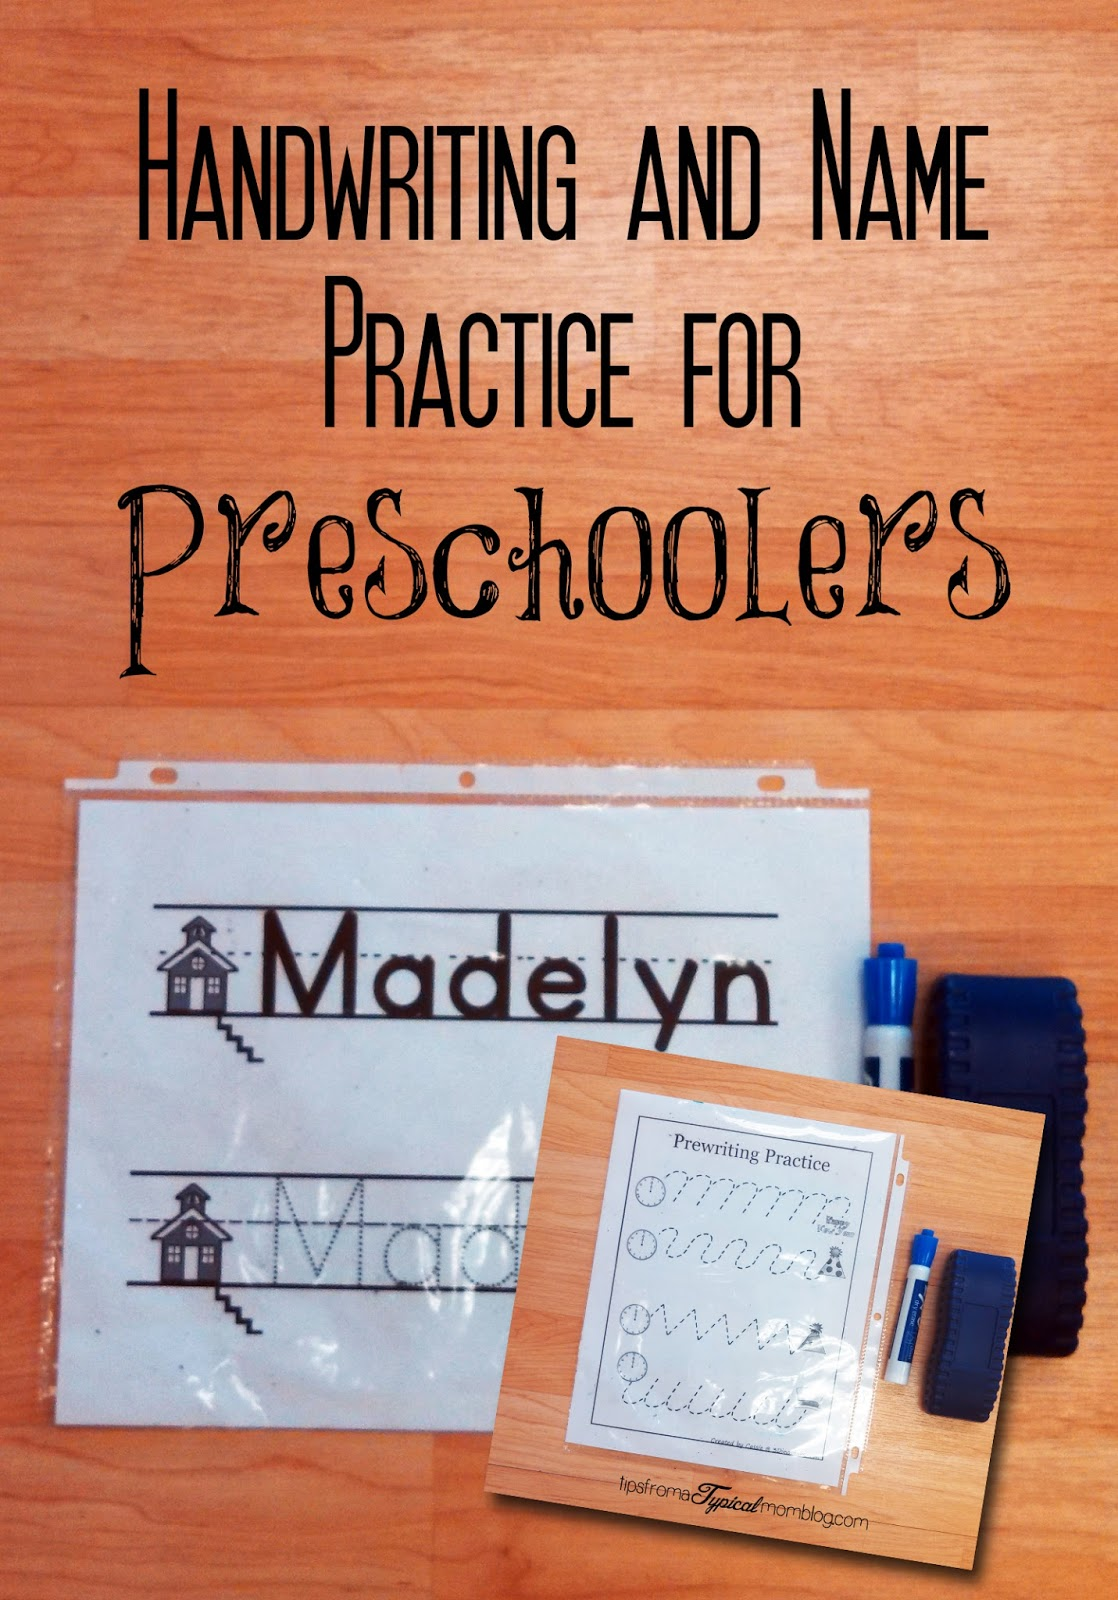 Name And Handwriting Practice Ideas For Preschoolers Tips From A